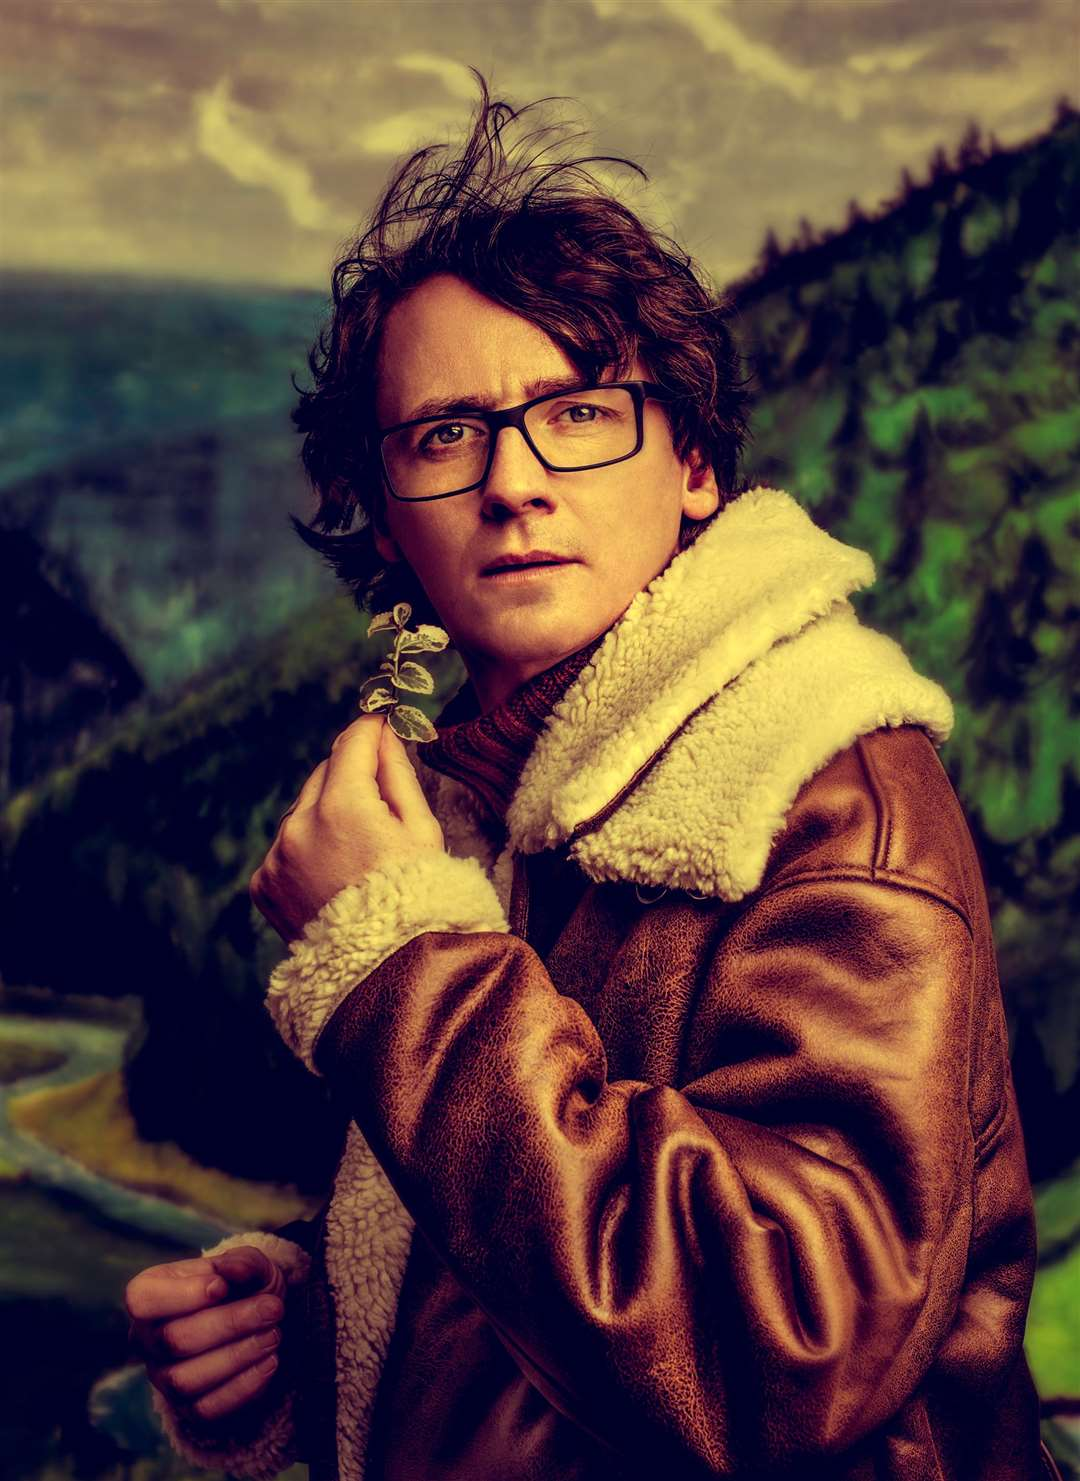 Comedian Ed Byrne. Photo by Idil Sukan.